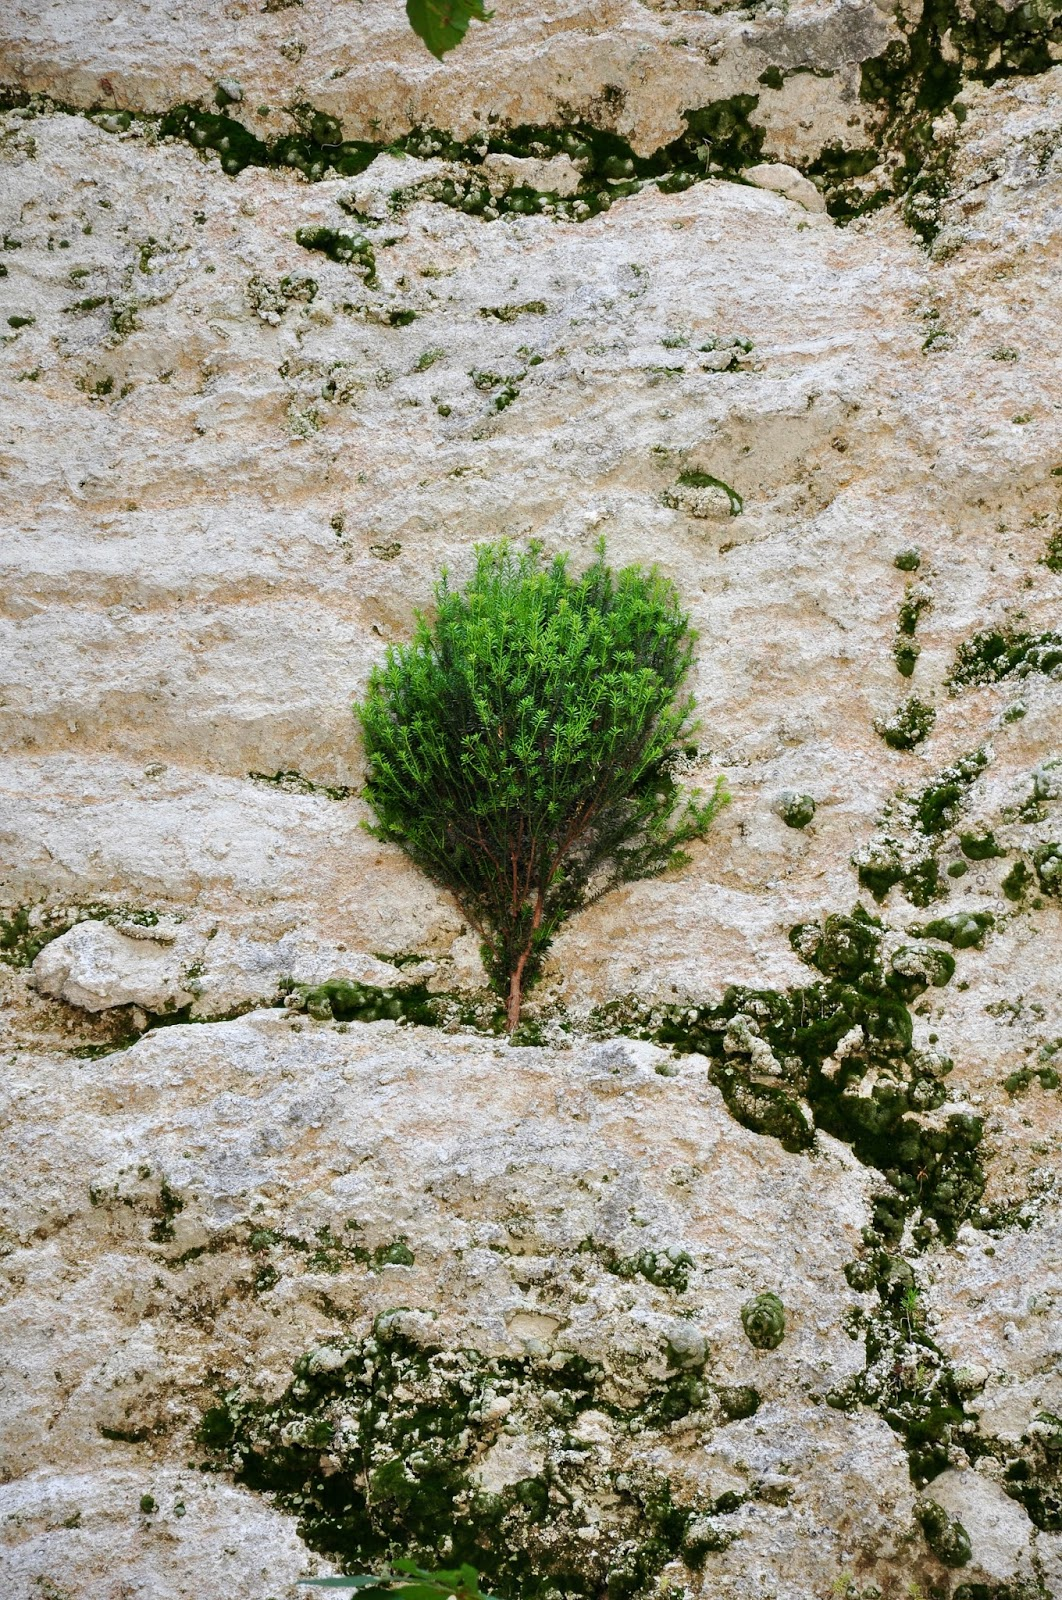 A tree growing on the vertical rocks, Madara, Bulgaria